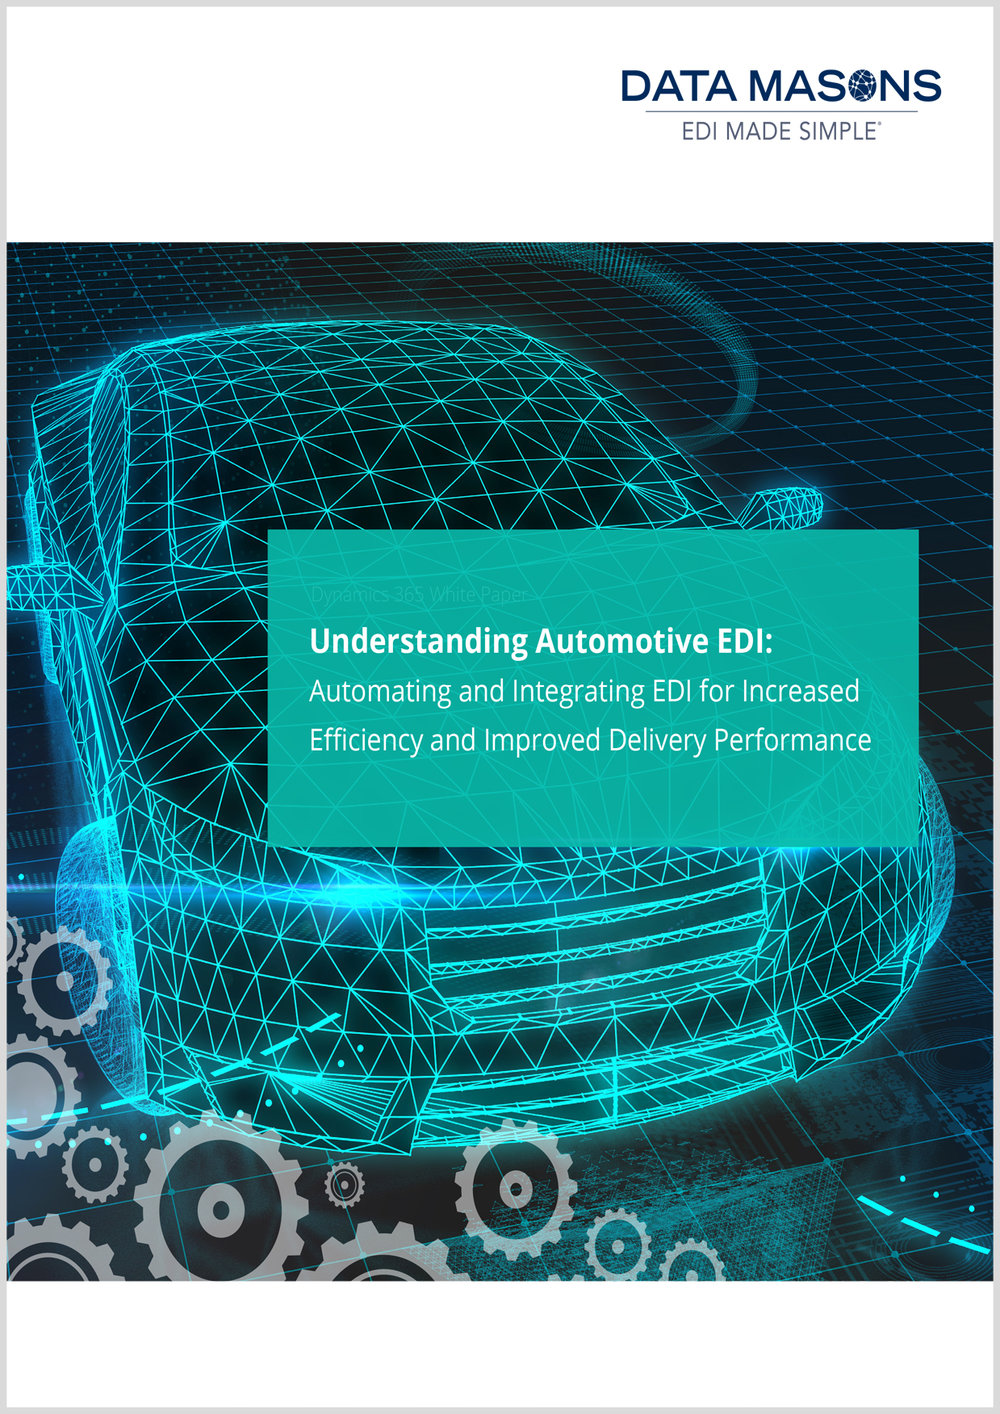 DATA MASON'S AUTOMOTIVE EDI -